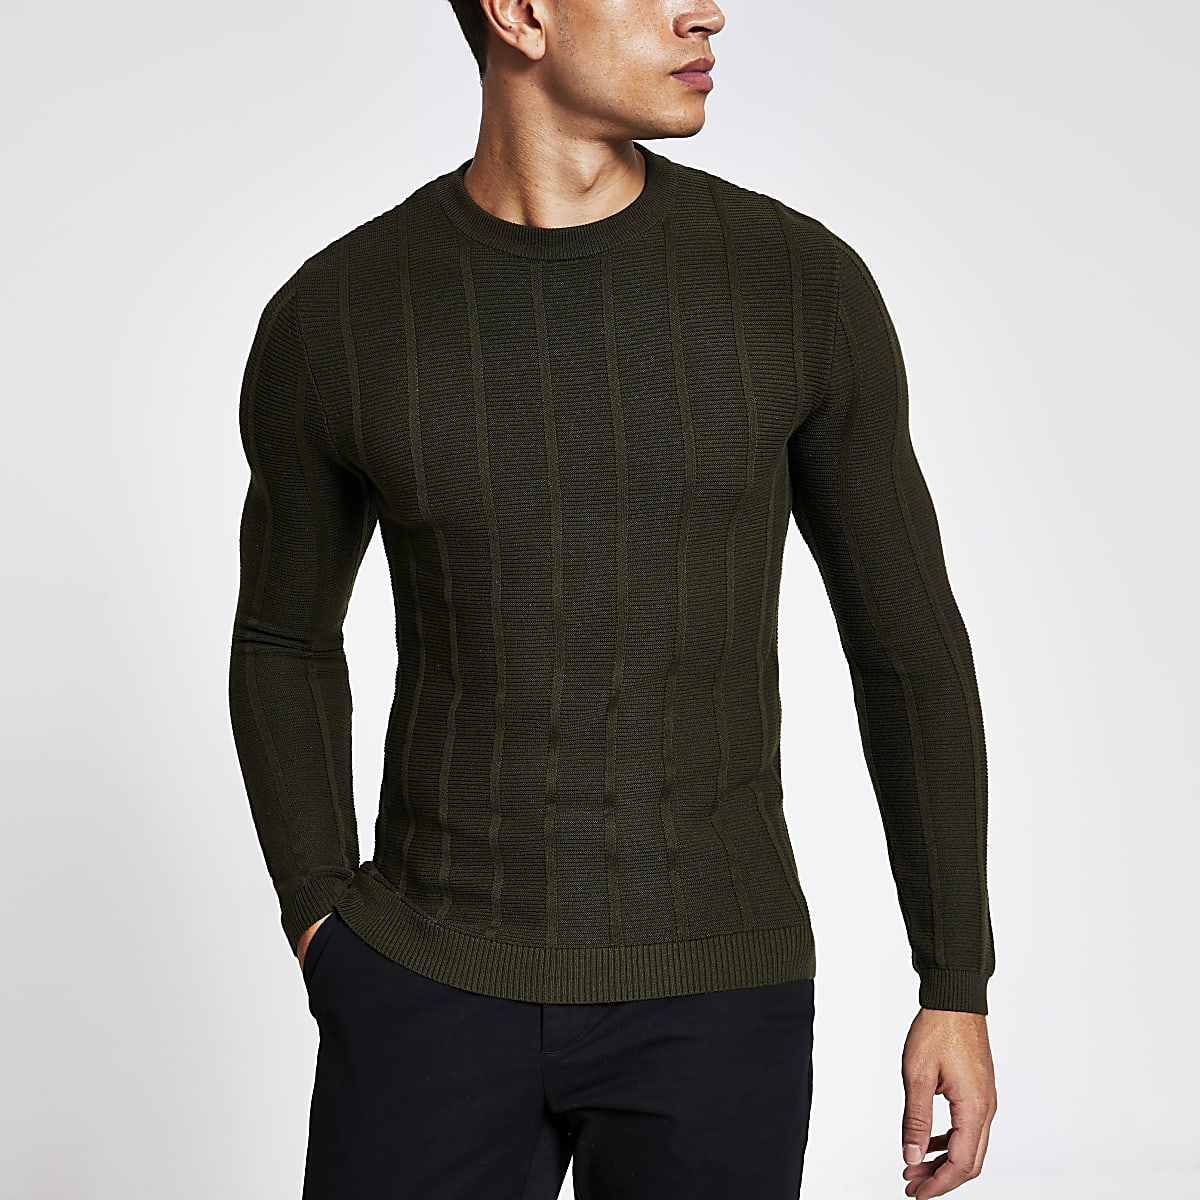 Khaki muscle fit rib knitted jumper